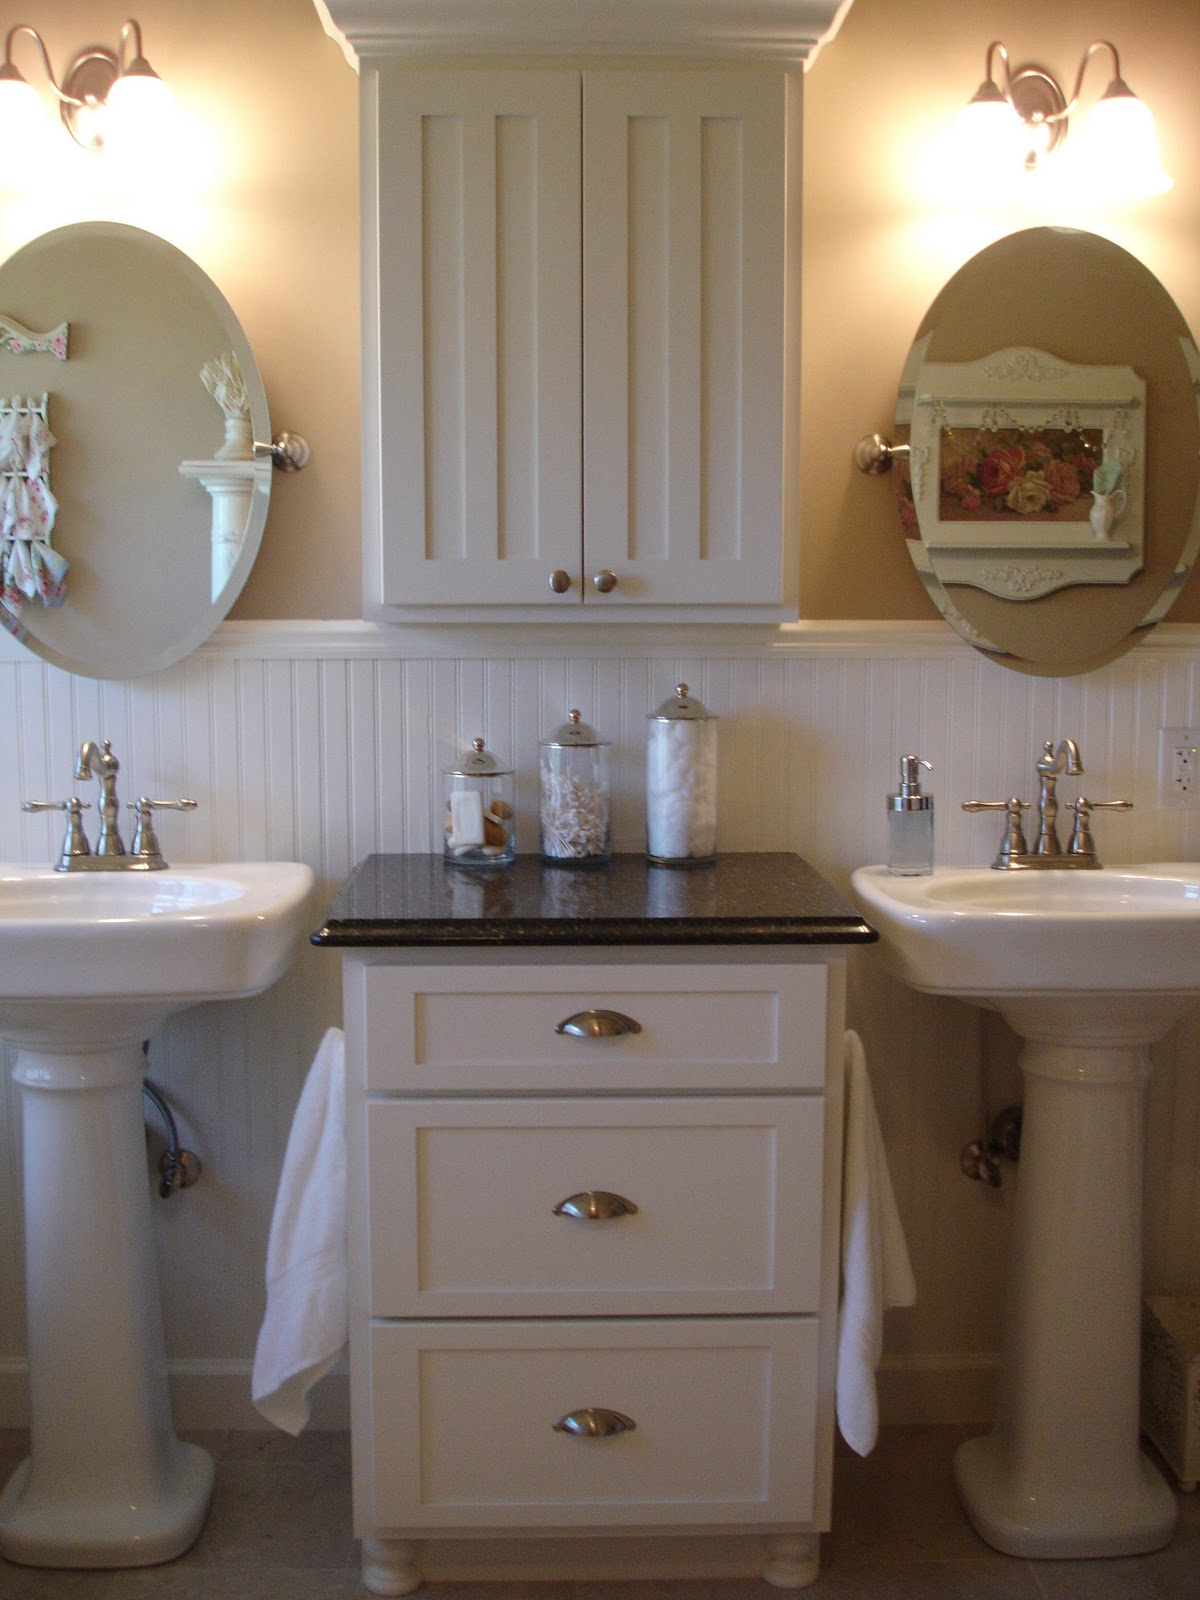 2 Pedestal Sinks Bathroom : Pedestal Bathroom Sink further Bathroom Mirrors With Pedestal Sink ...